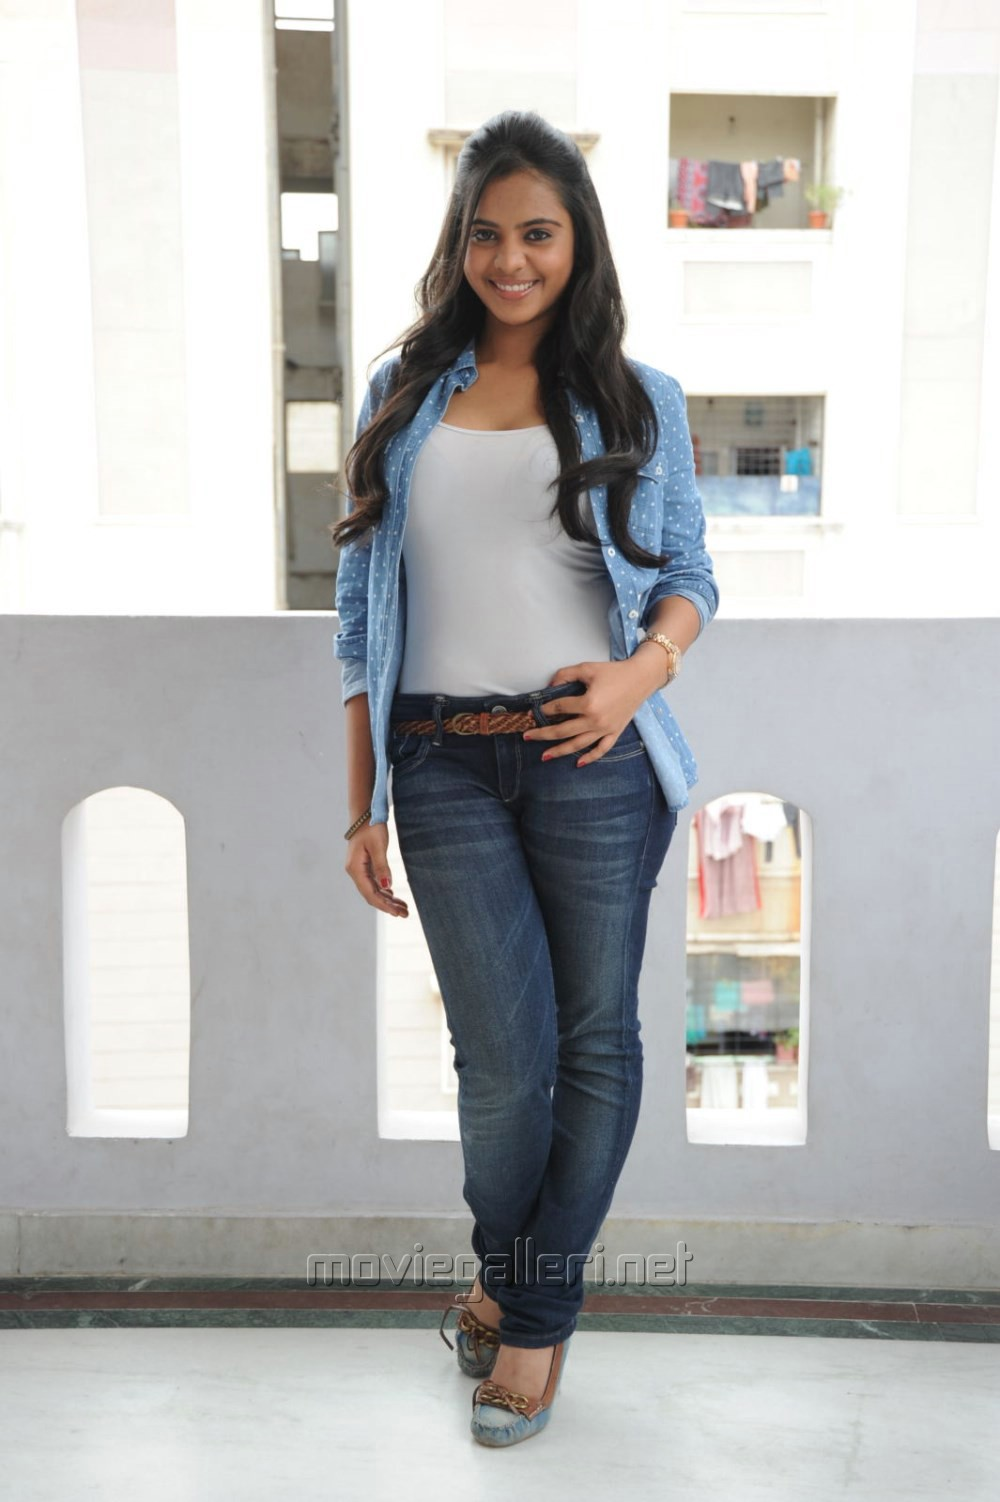 White Top And Jeans - Jeans Am